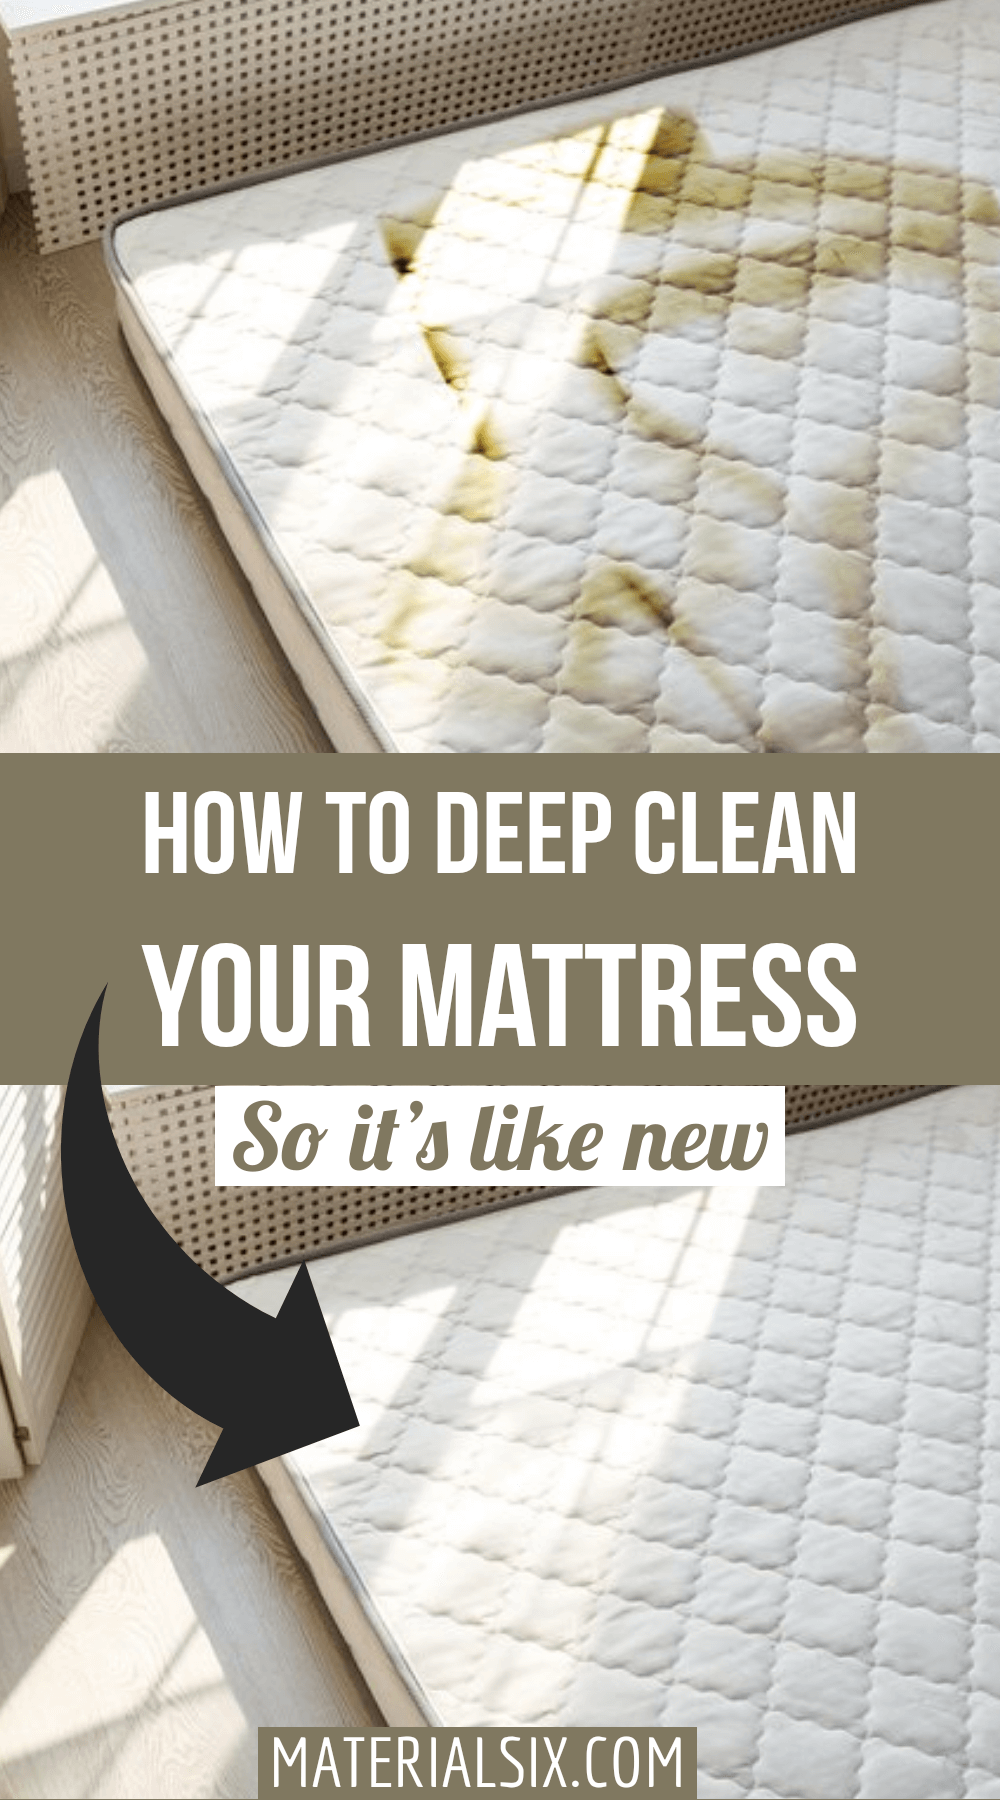 How to clean a mattress in 9 simple steps